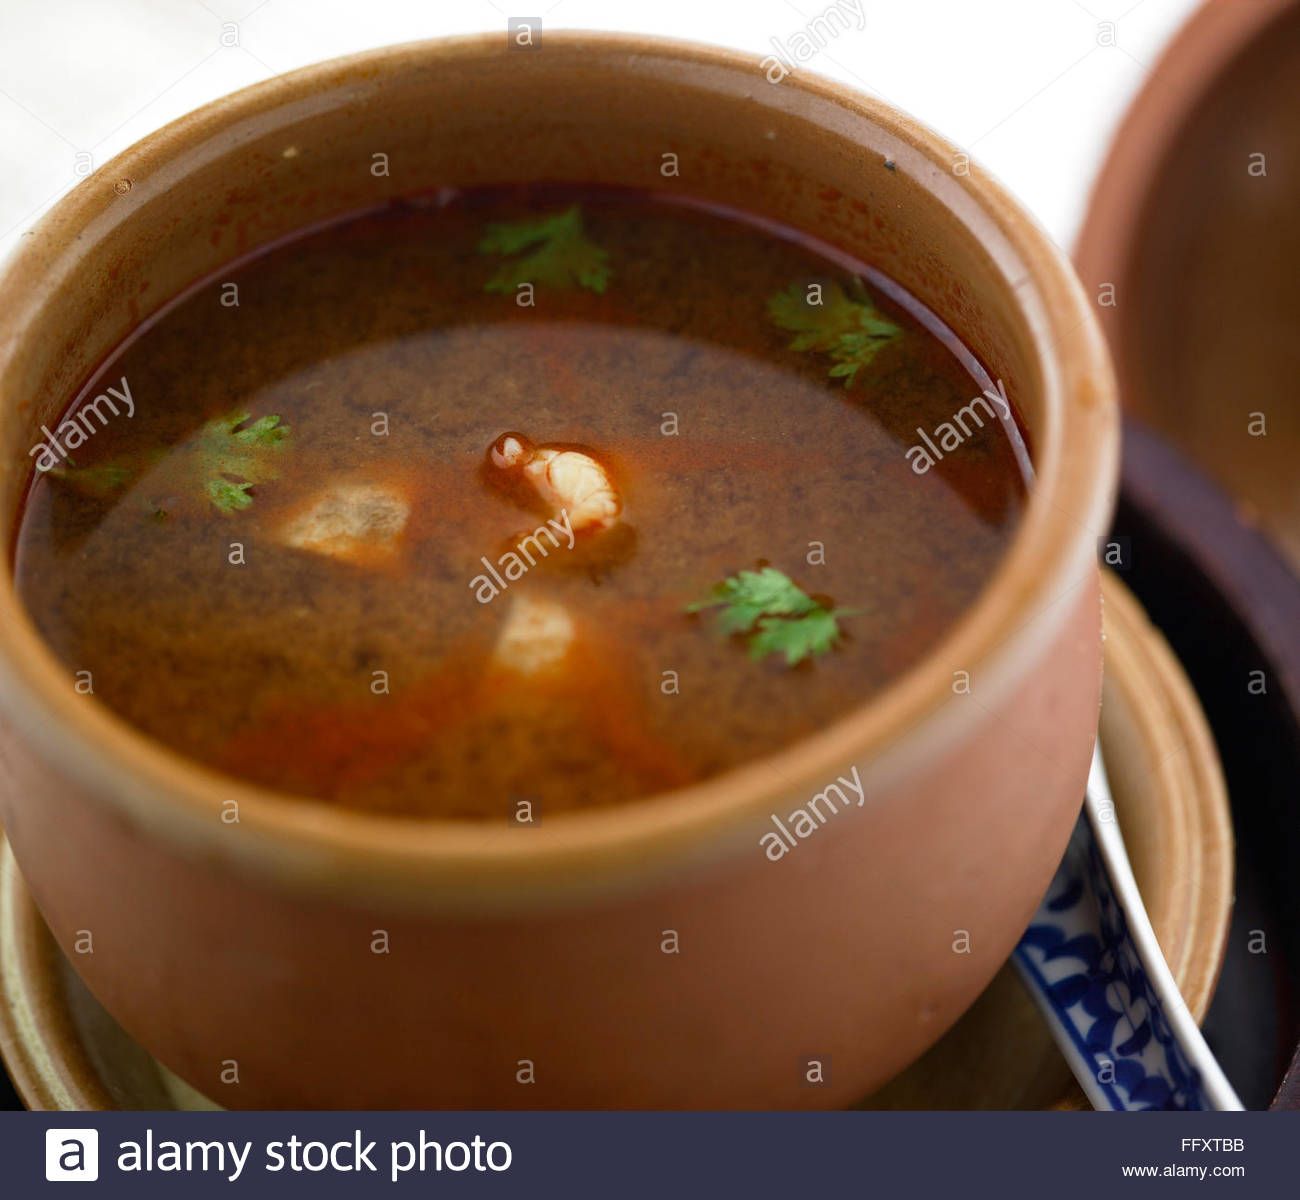 Non vegetarian meal , prawns tom yum soup served in bowl - Stock Image